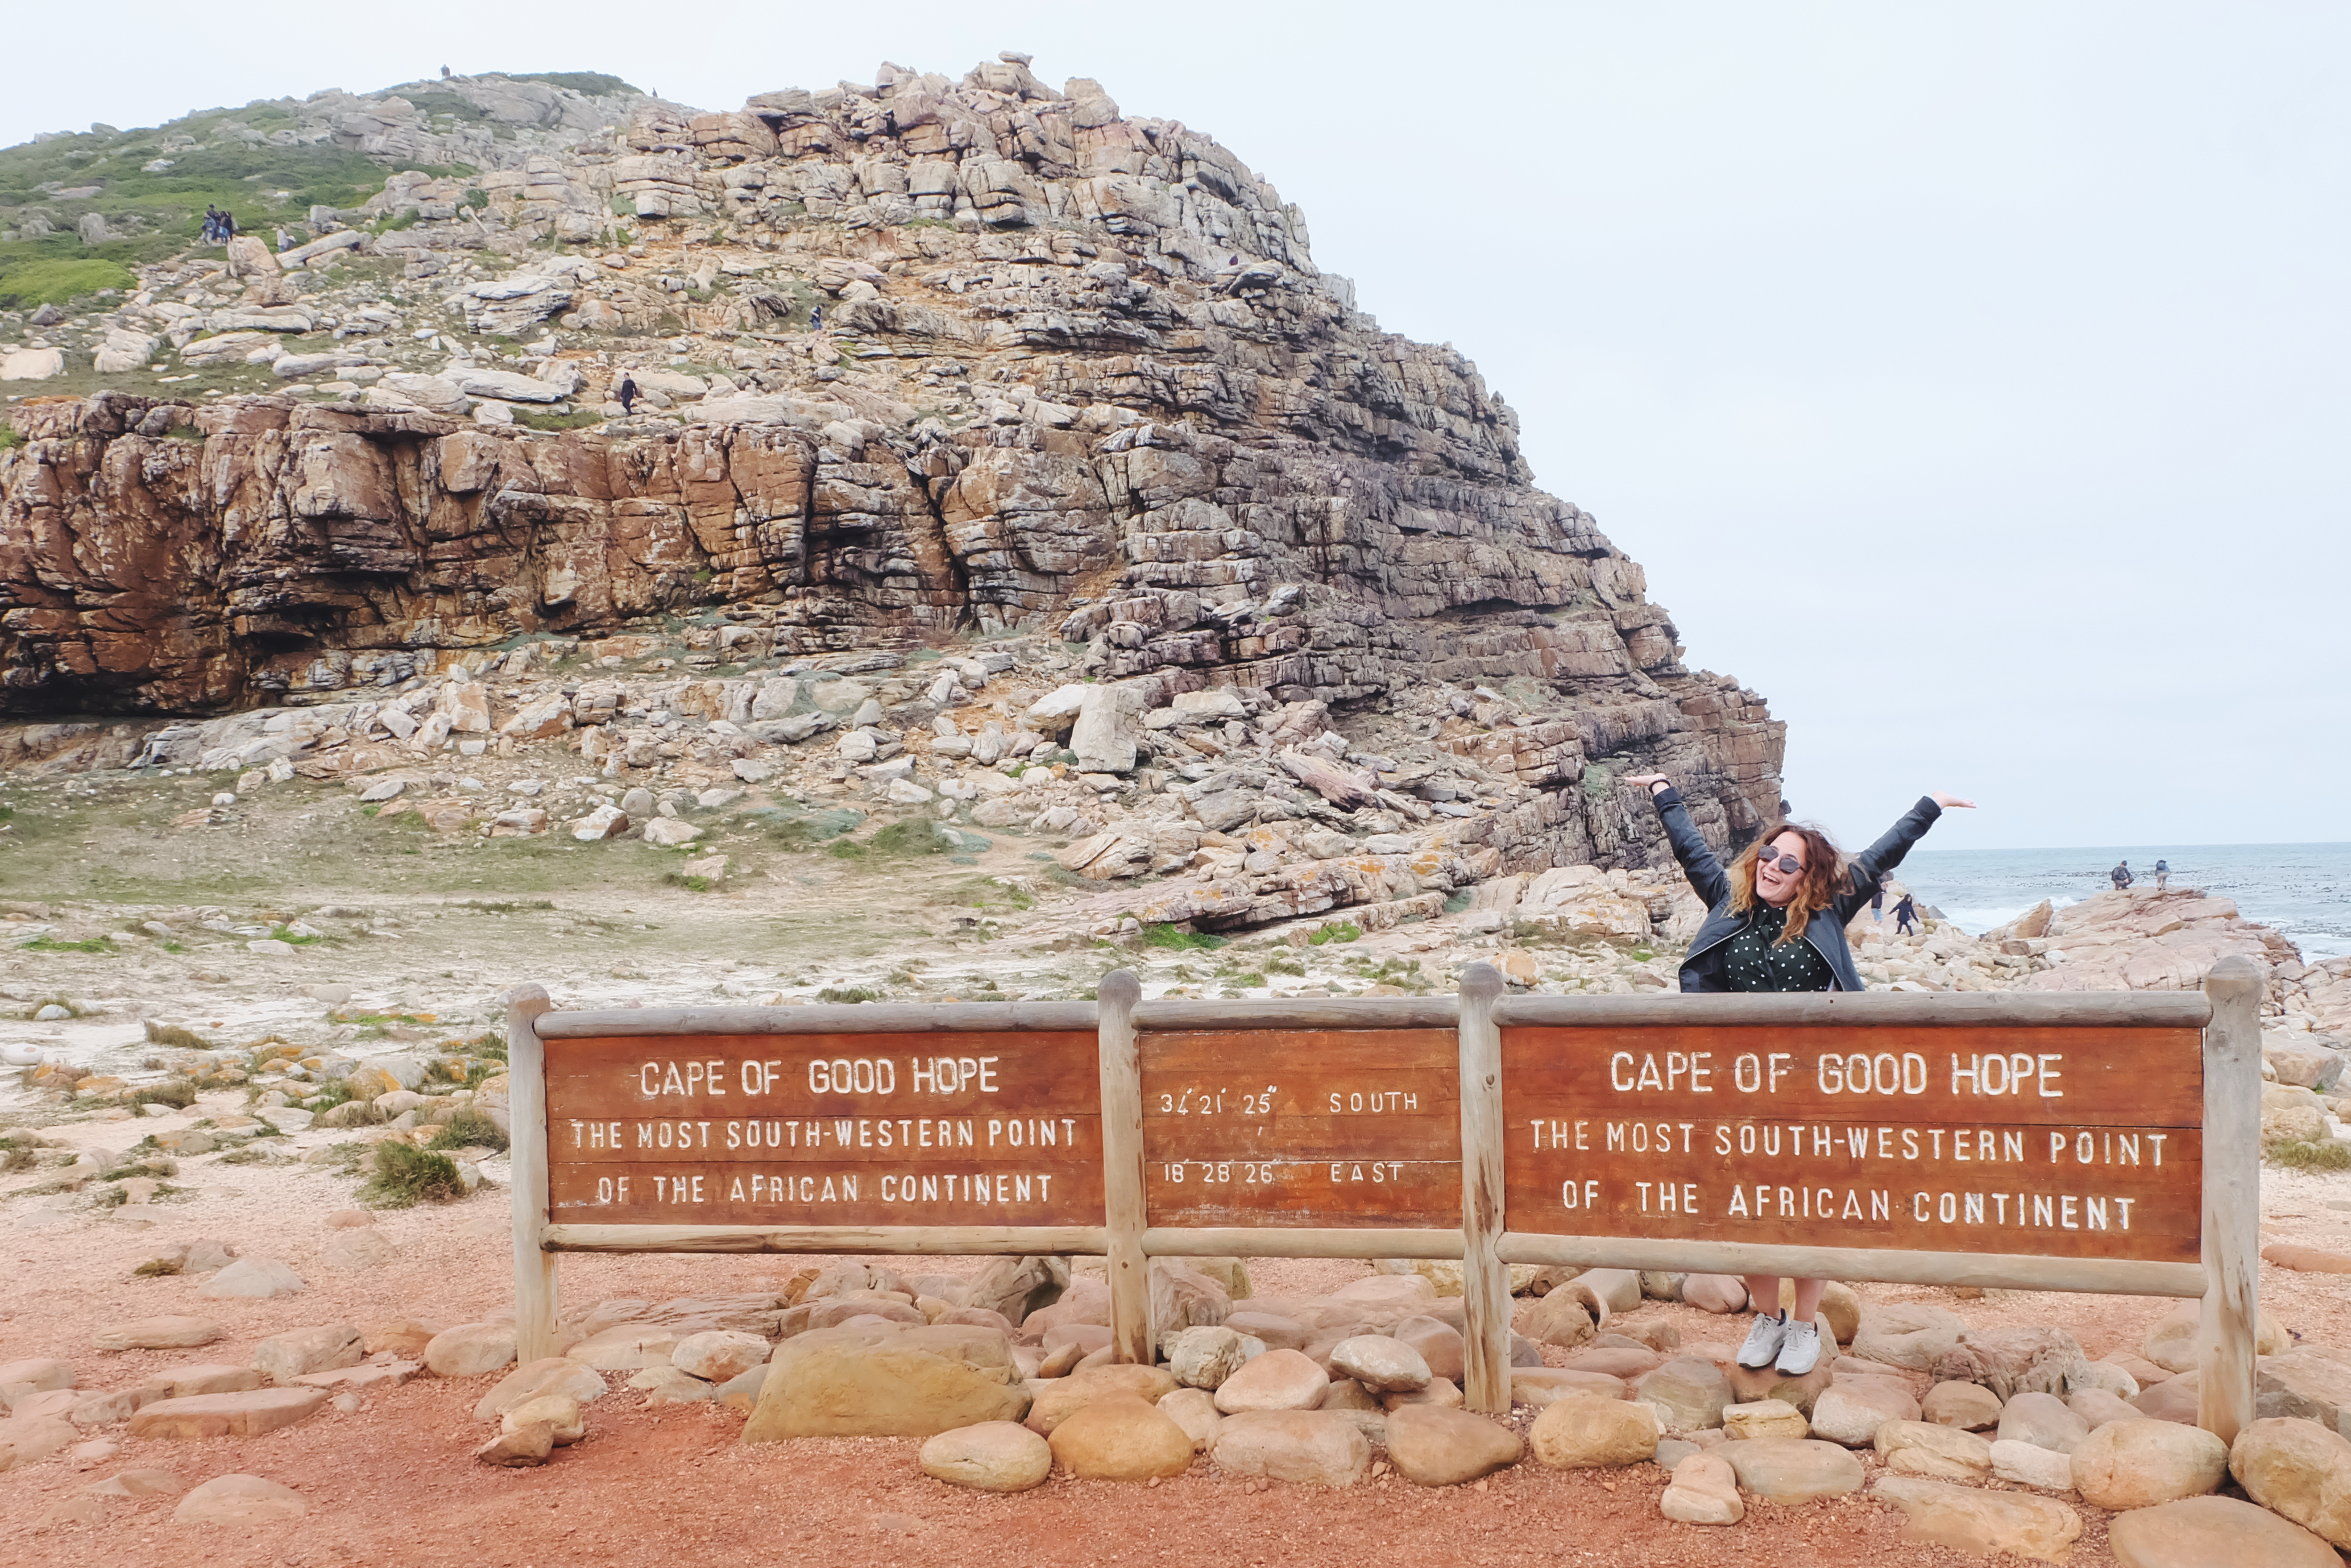 famous Cape of Good Hope sign